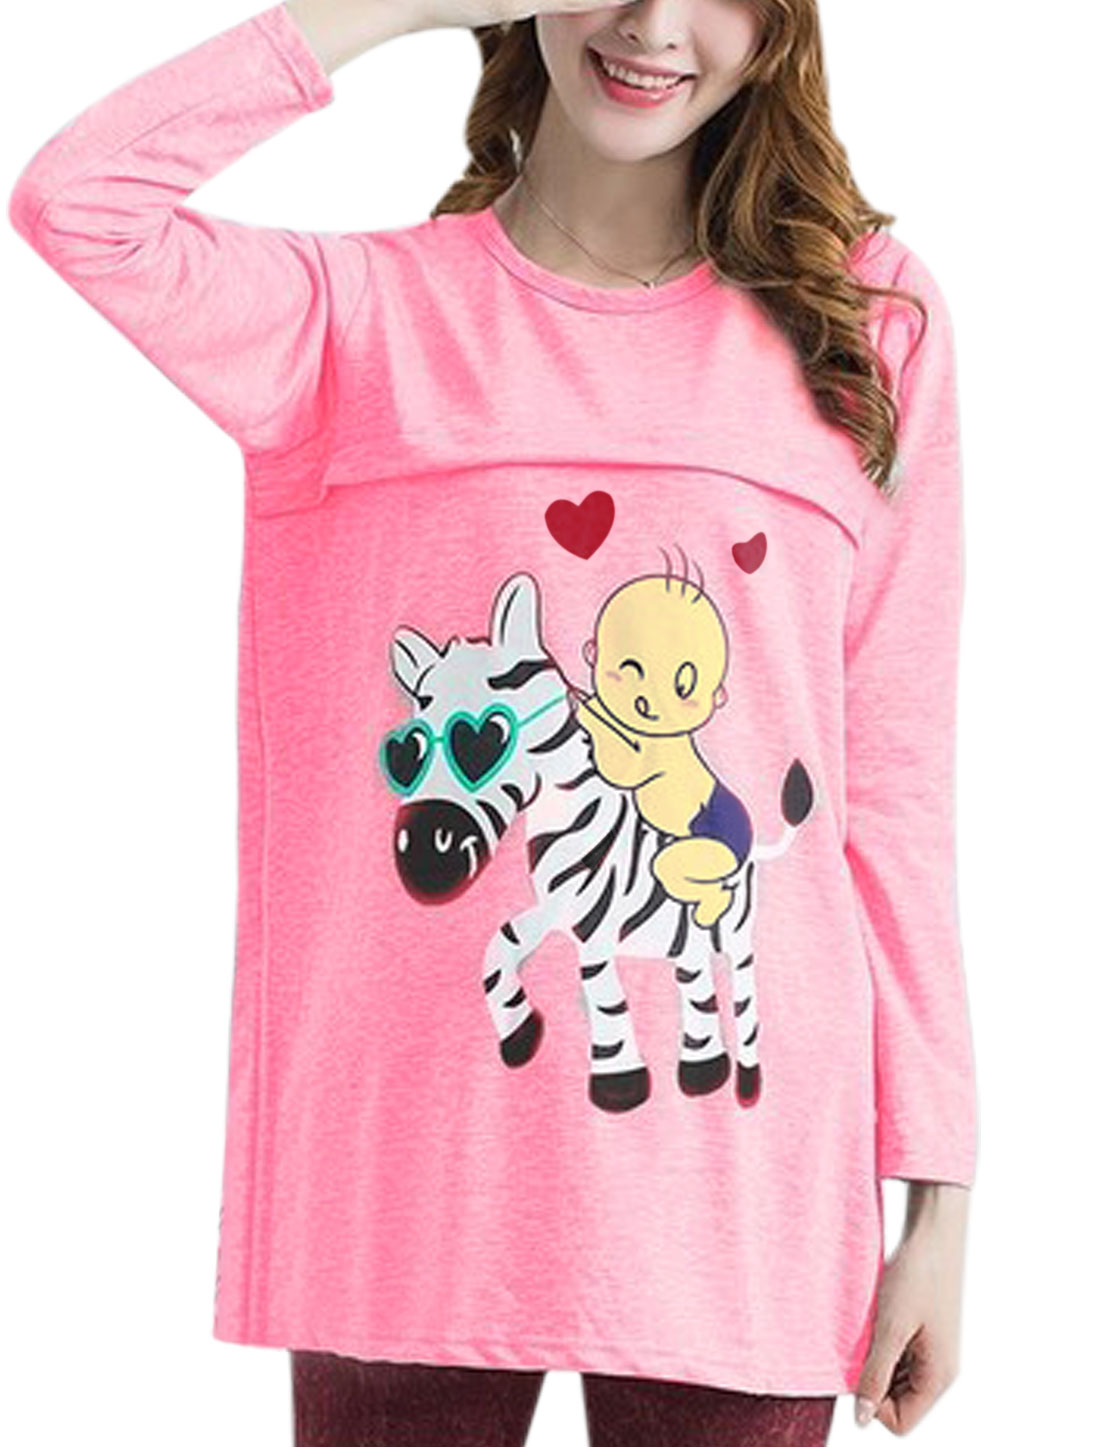 XK22 Maternity Pullover Cartoon Prints Casual Tunic Tee Shirt Pink XL/L (US 12)